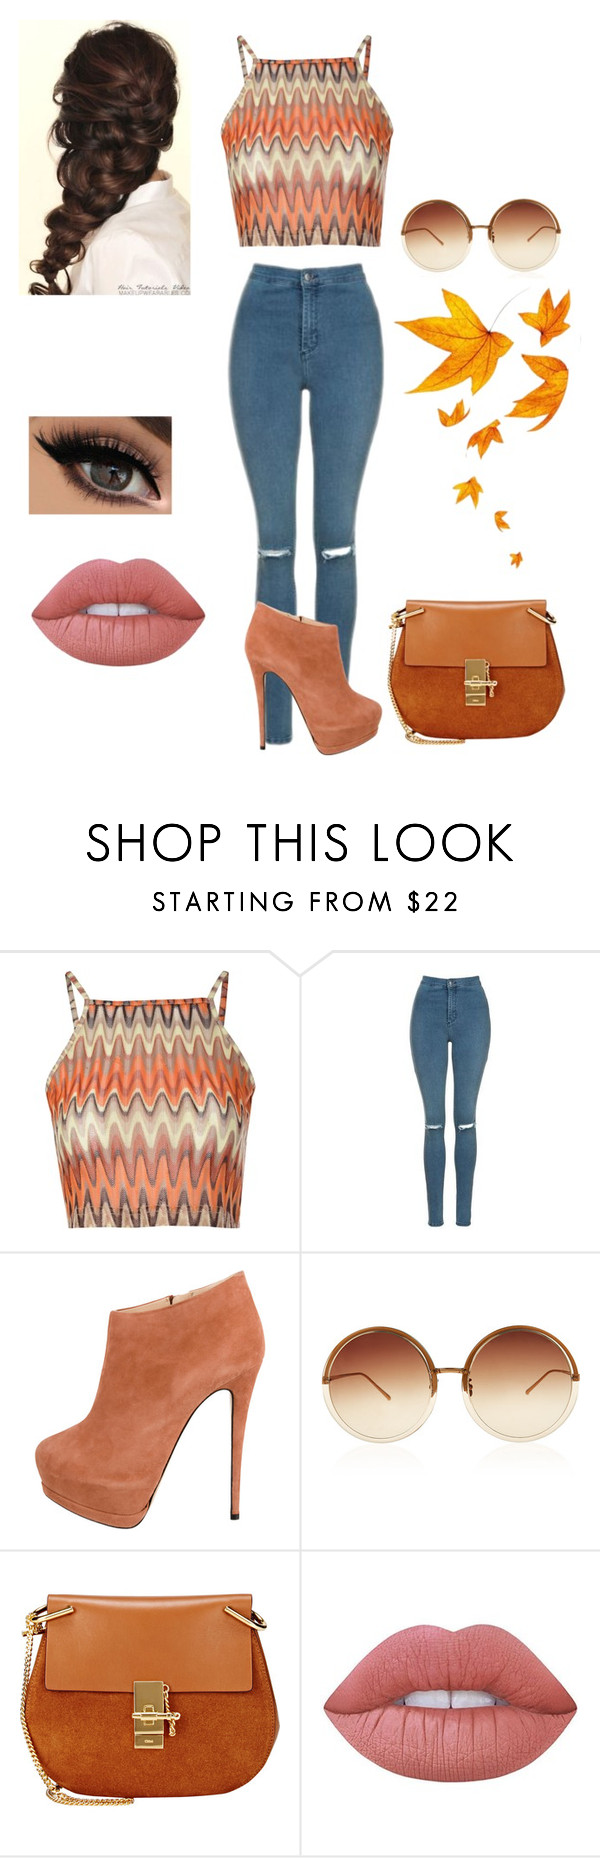 """""""Untitled #570"""" by jujuxx33 ❤ liked on Polyvore featuring Glamorous, Topshop, Giuseppe Zanotti, Linda Farrow, Disney, Chloé and Lime Crime"""